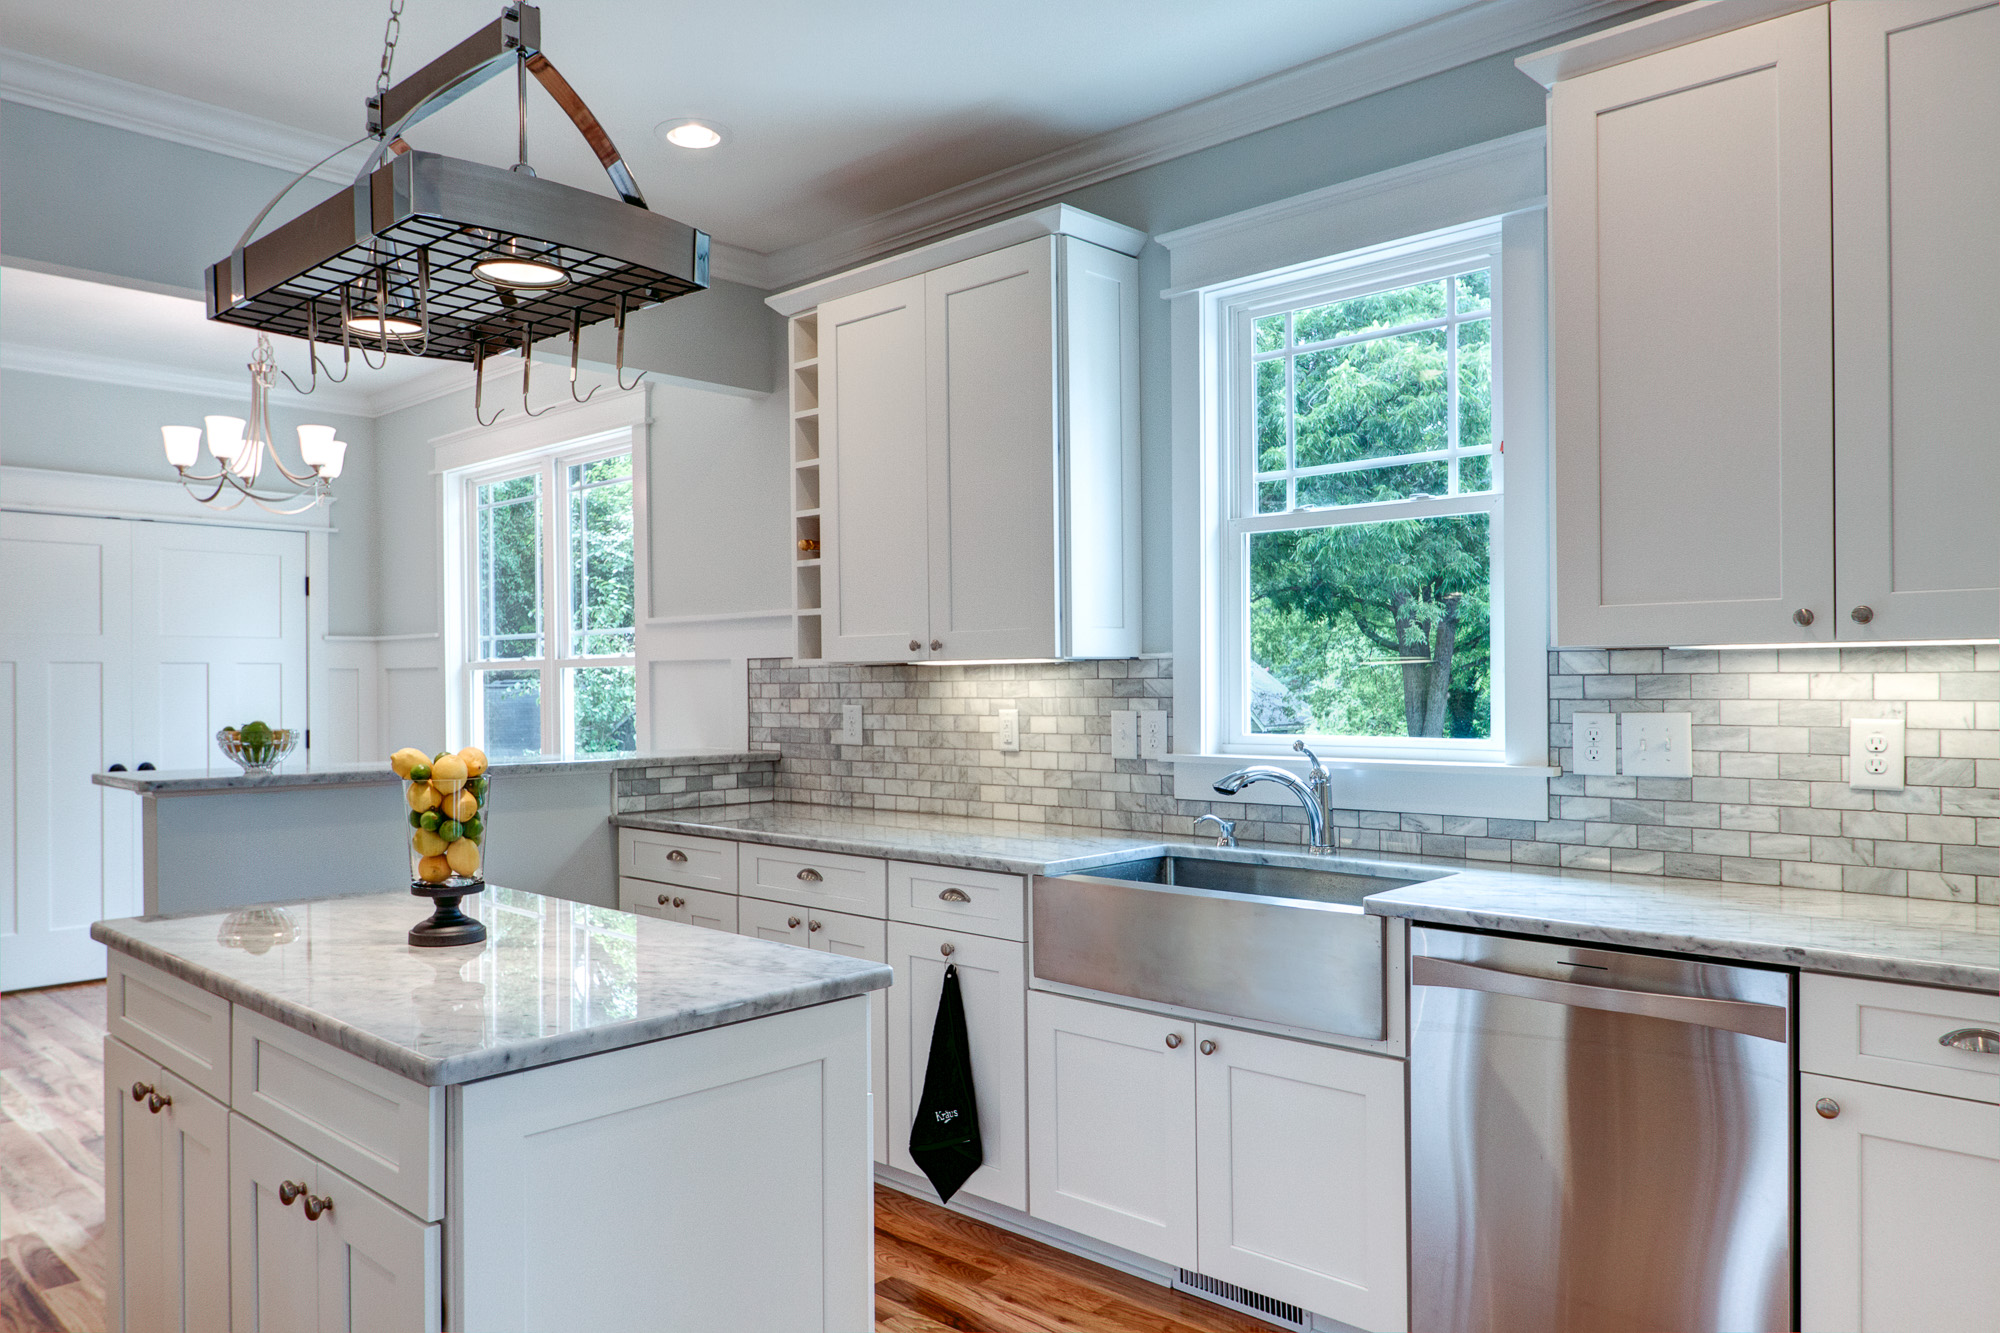 A modern farmhouse kitchen featuring clean white cabinetry with marble counter tops and stainless steel farmhouse sink.